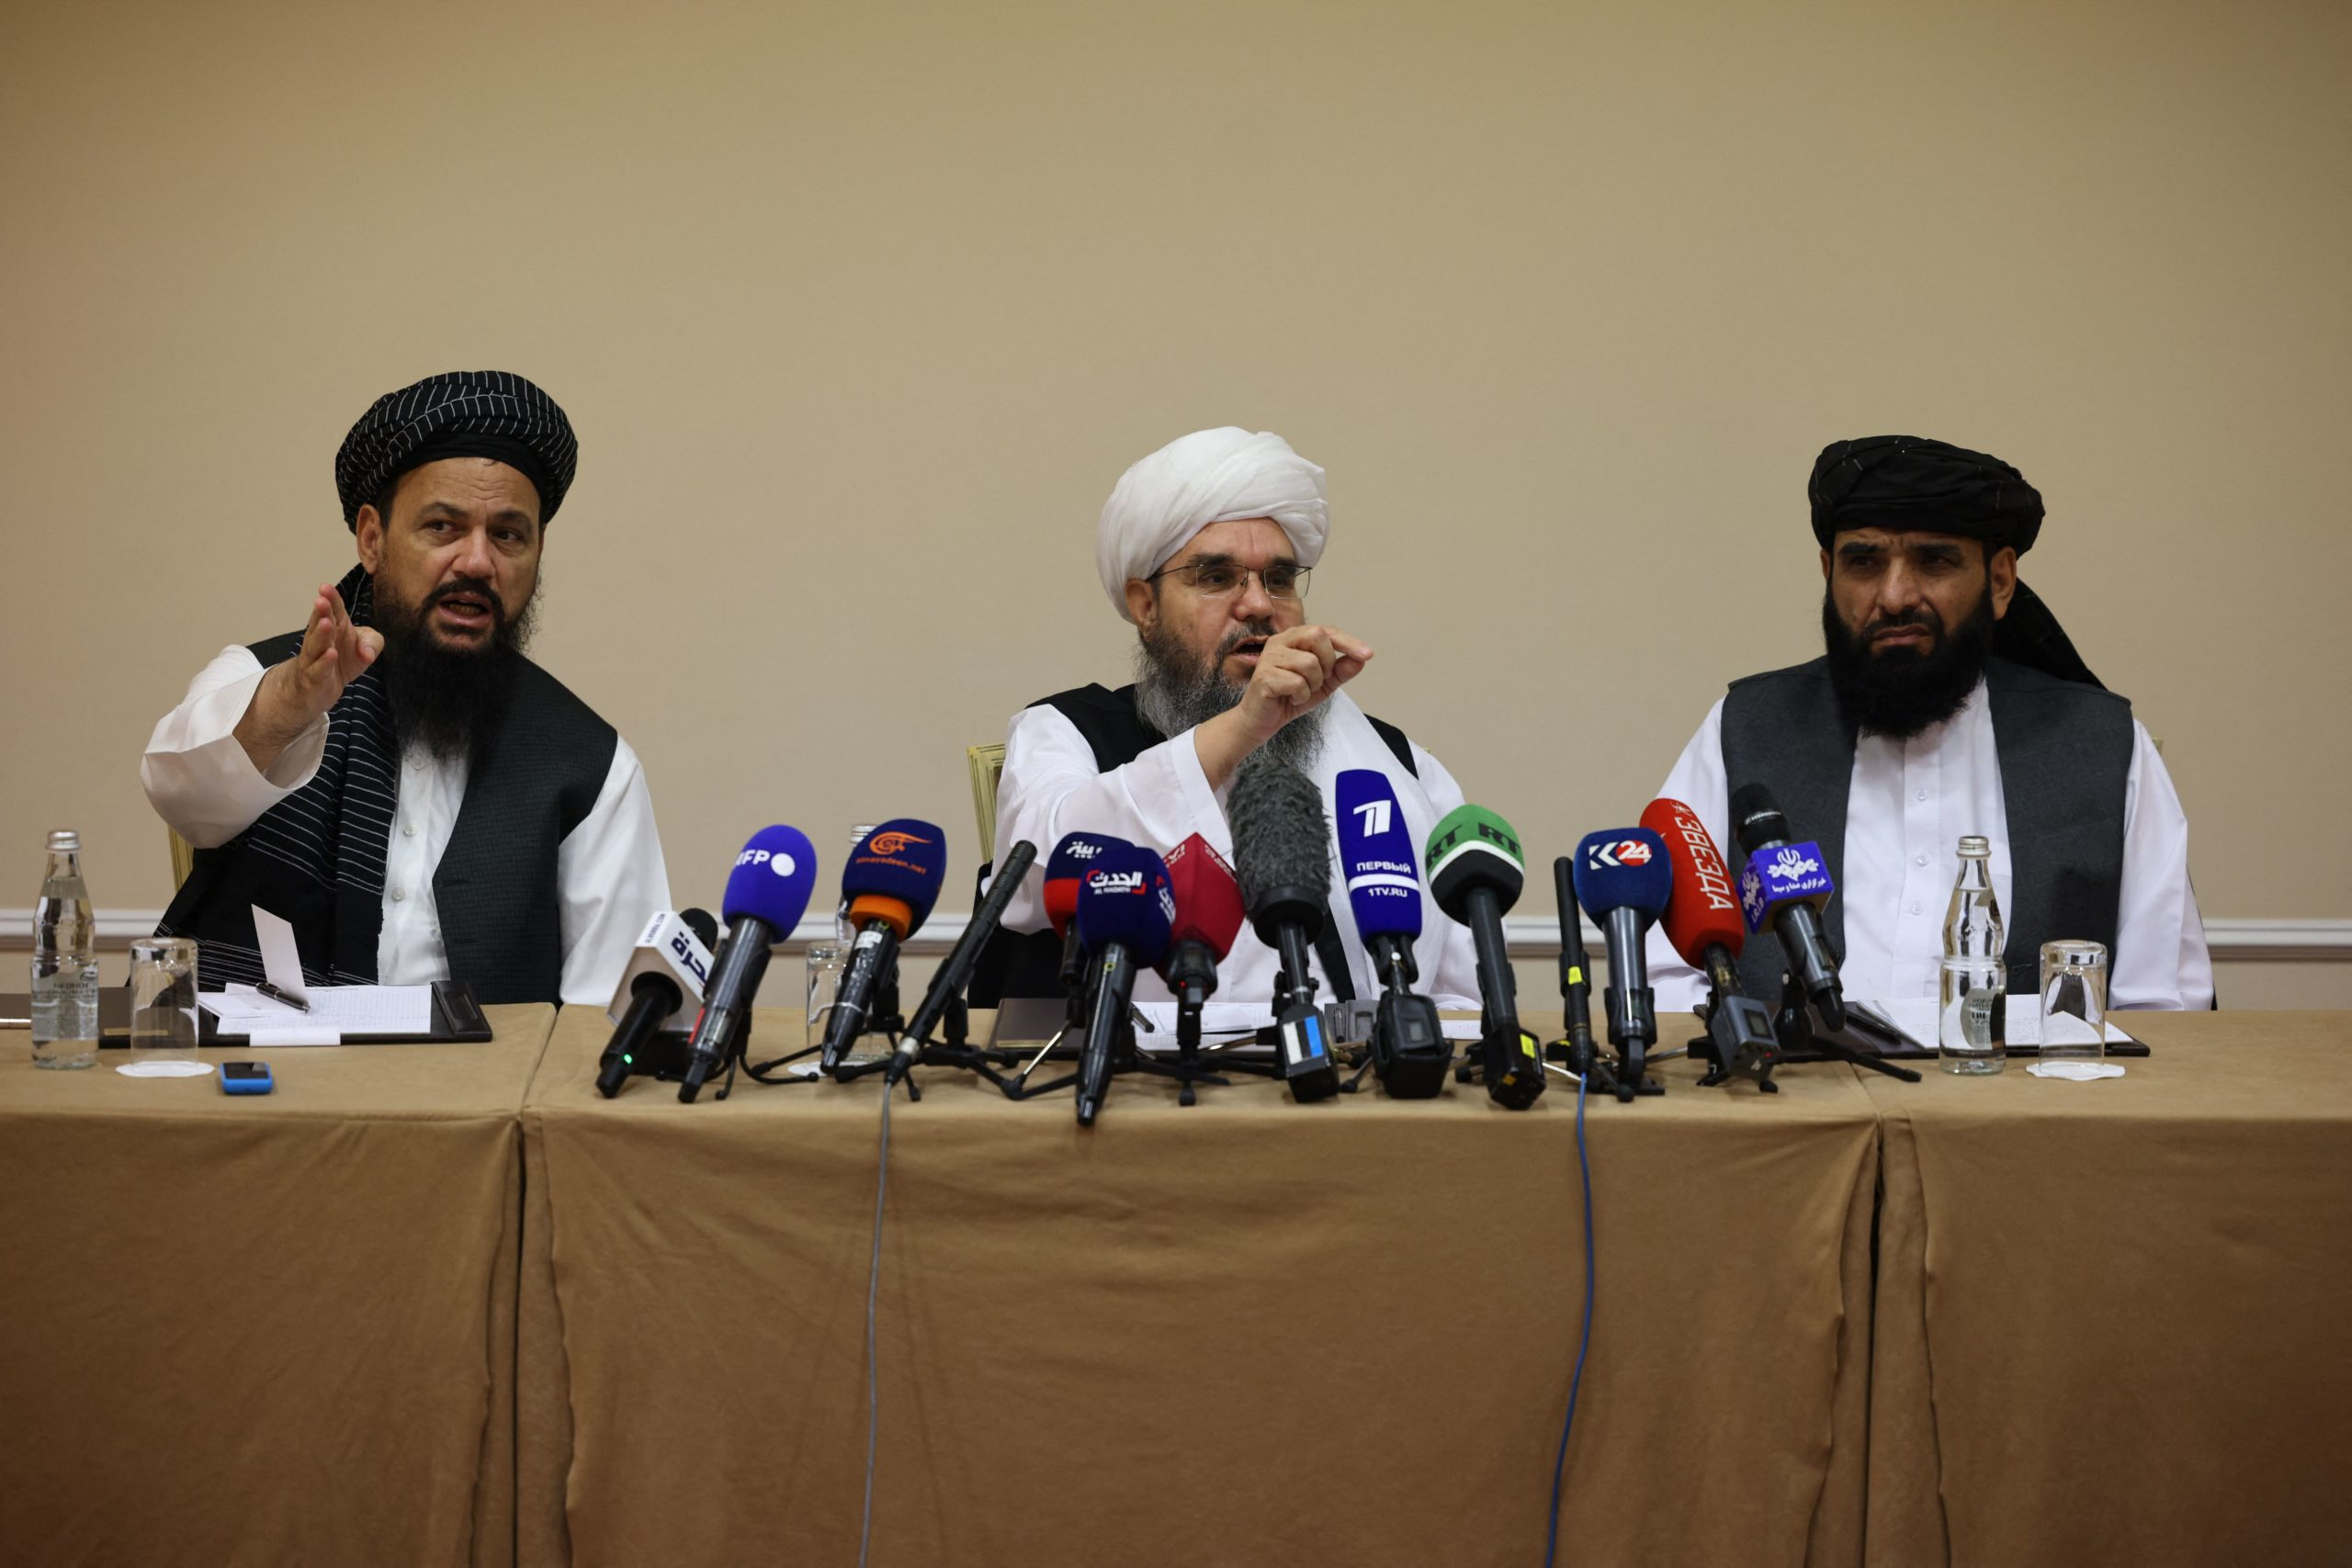 Taliban representatives attend a press conference in Moscow, Russia on Friday. (Dimitar Dilkoff/AFP via Getty Images)